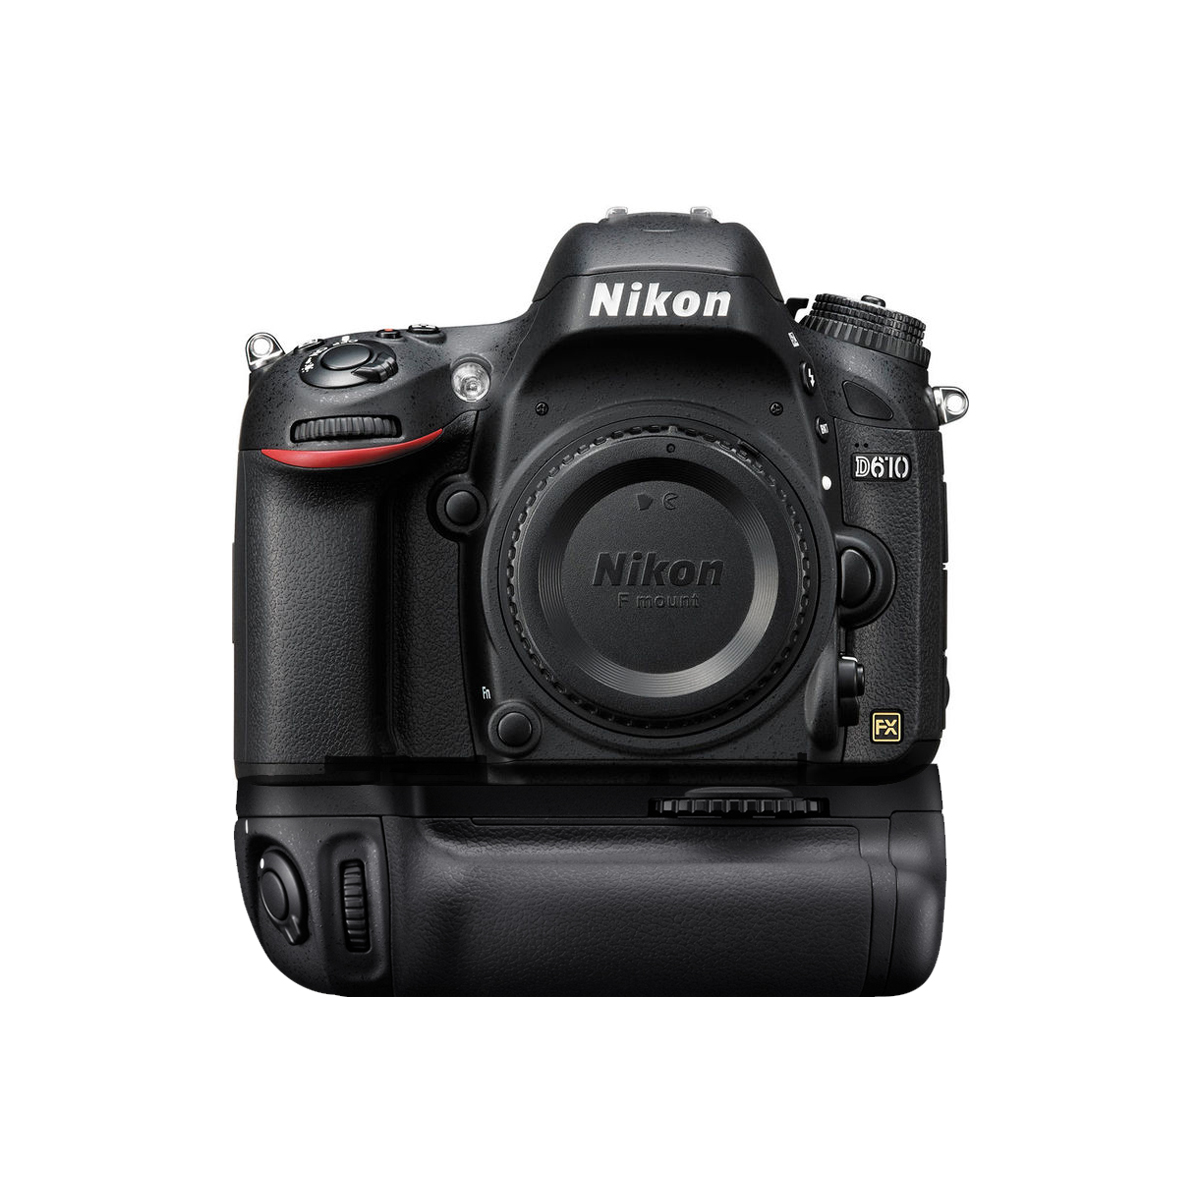 Nikon D610 Dslr Body The Camera Exchange Inc